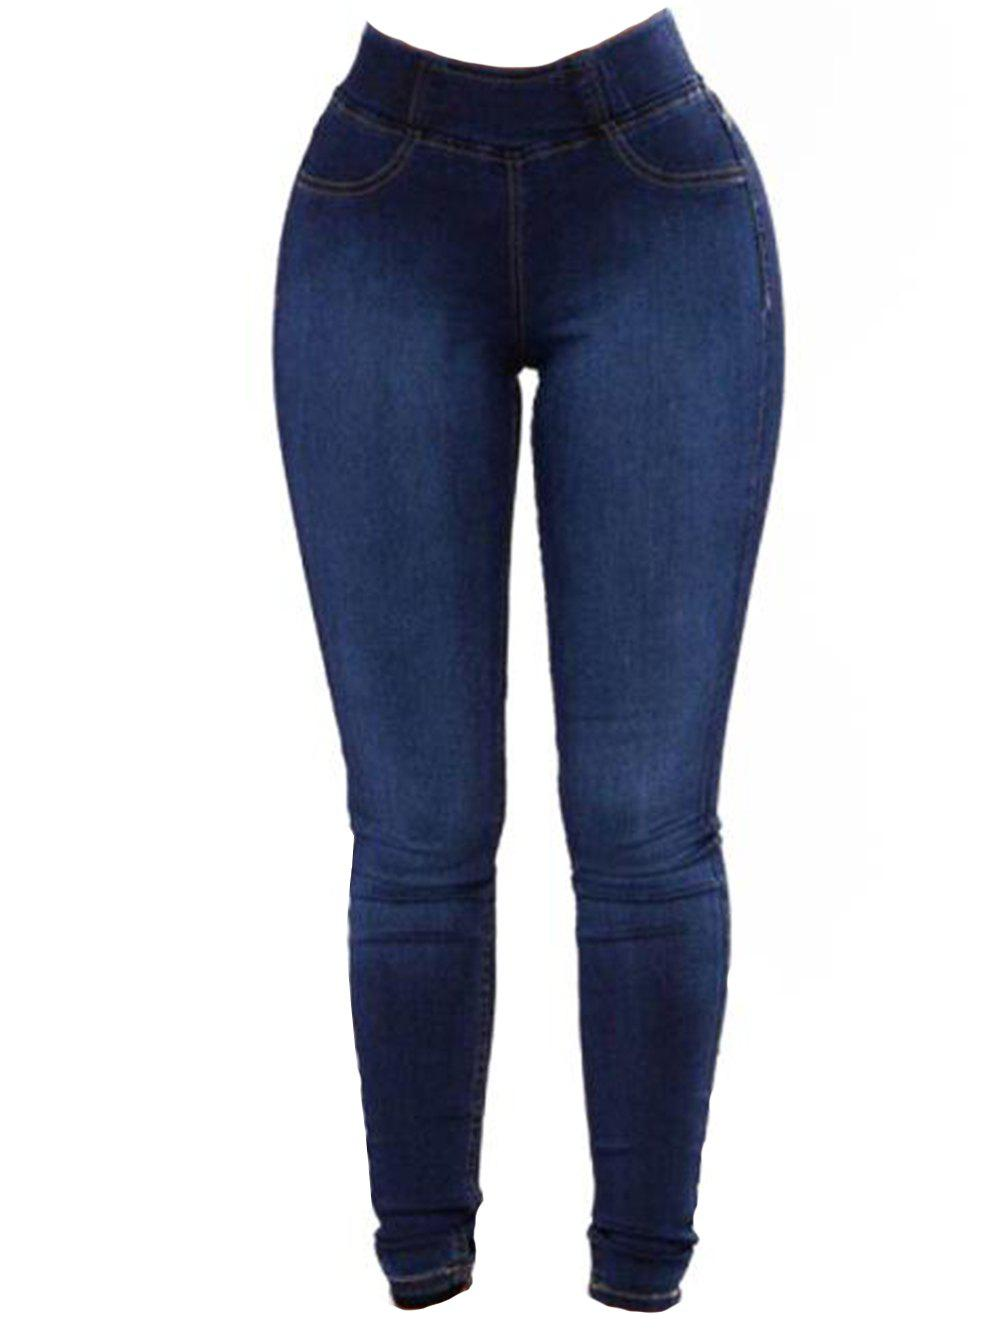 Buy Womens Fashion Slim Fit Stretchy Skinny Jeans